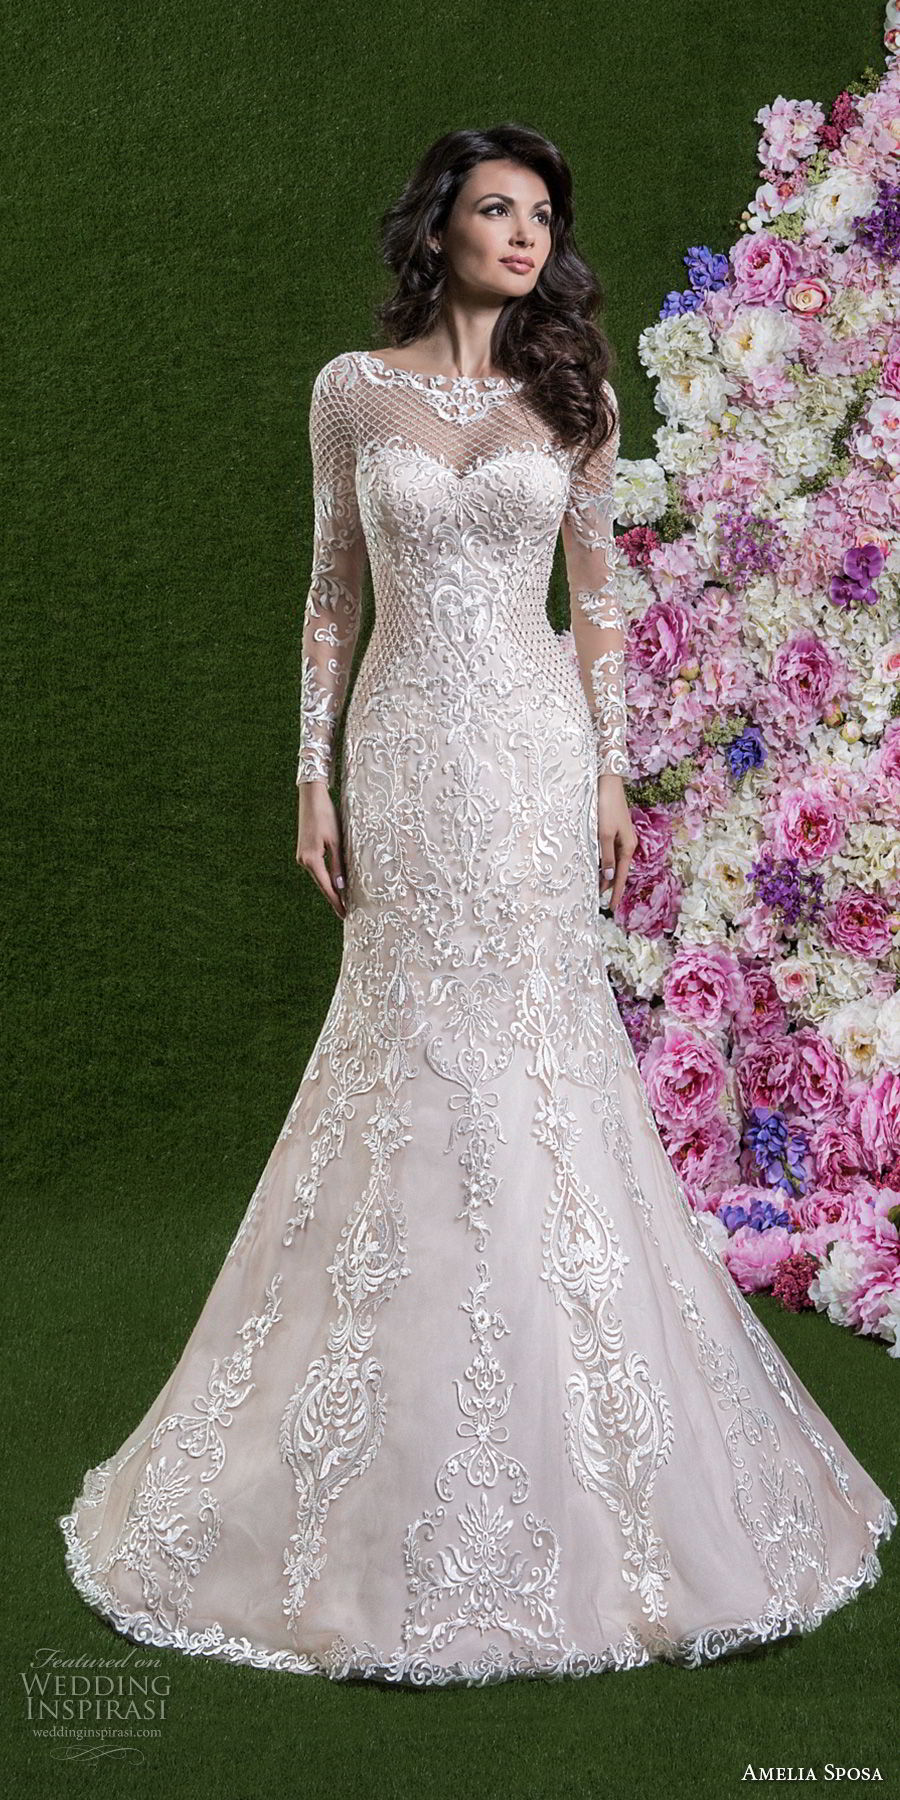 amelia sposa 2018 bridal long sleeves illusion bateau sweetheart neckline full embellishment elegant romantic pink trumpet wedding dress covered lace back medium train (cassandra) mv